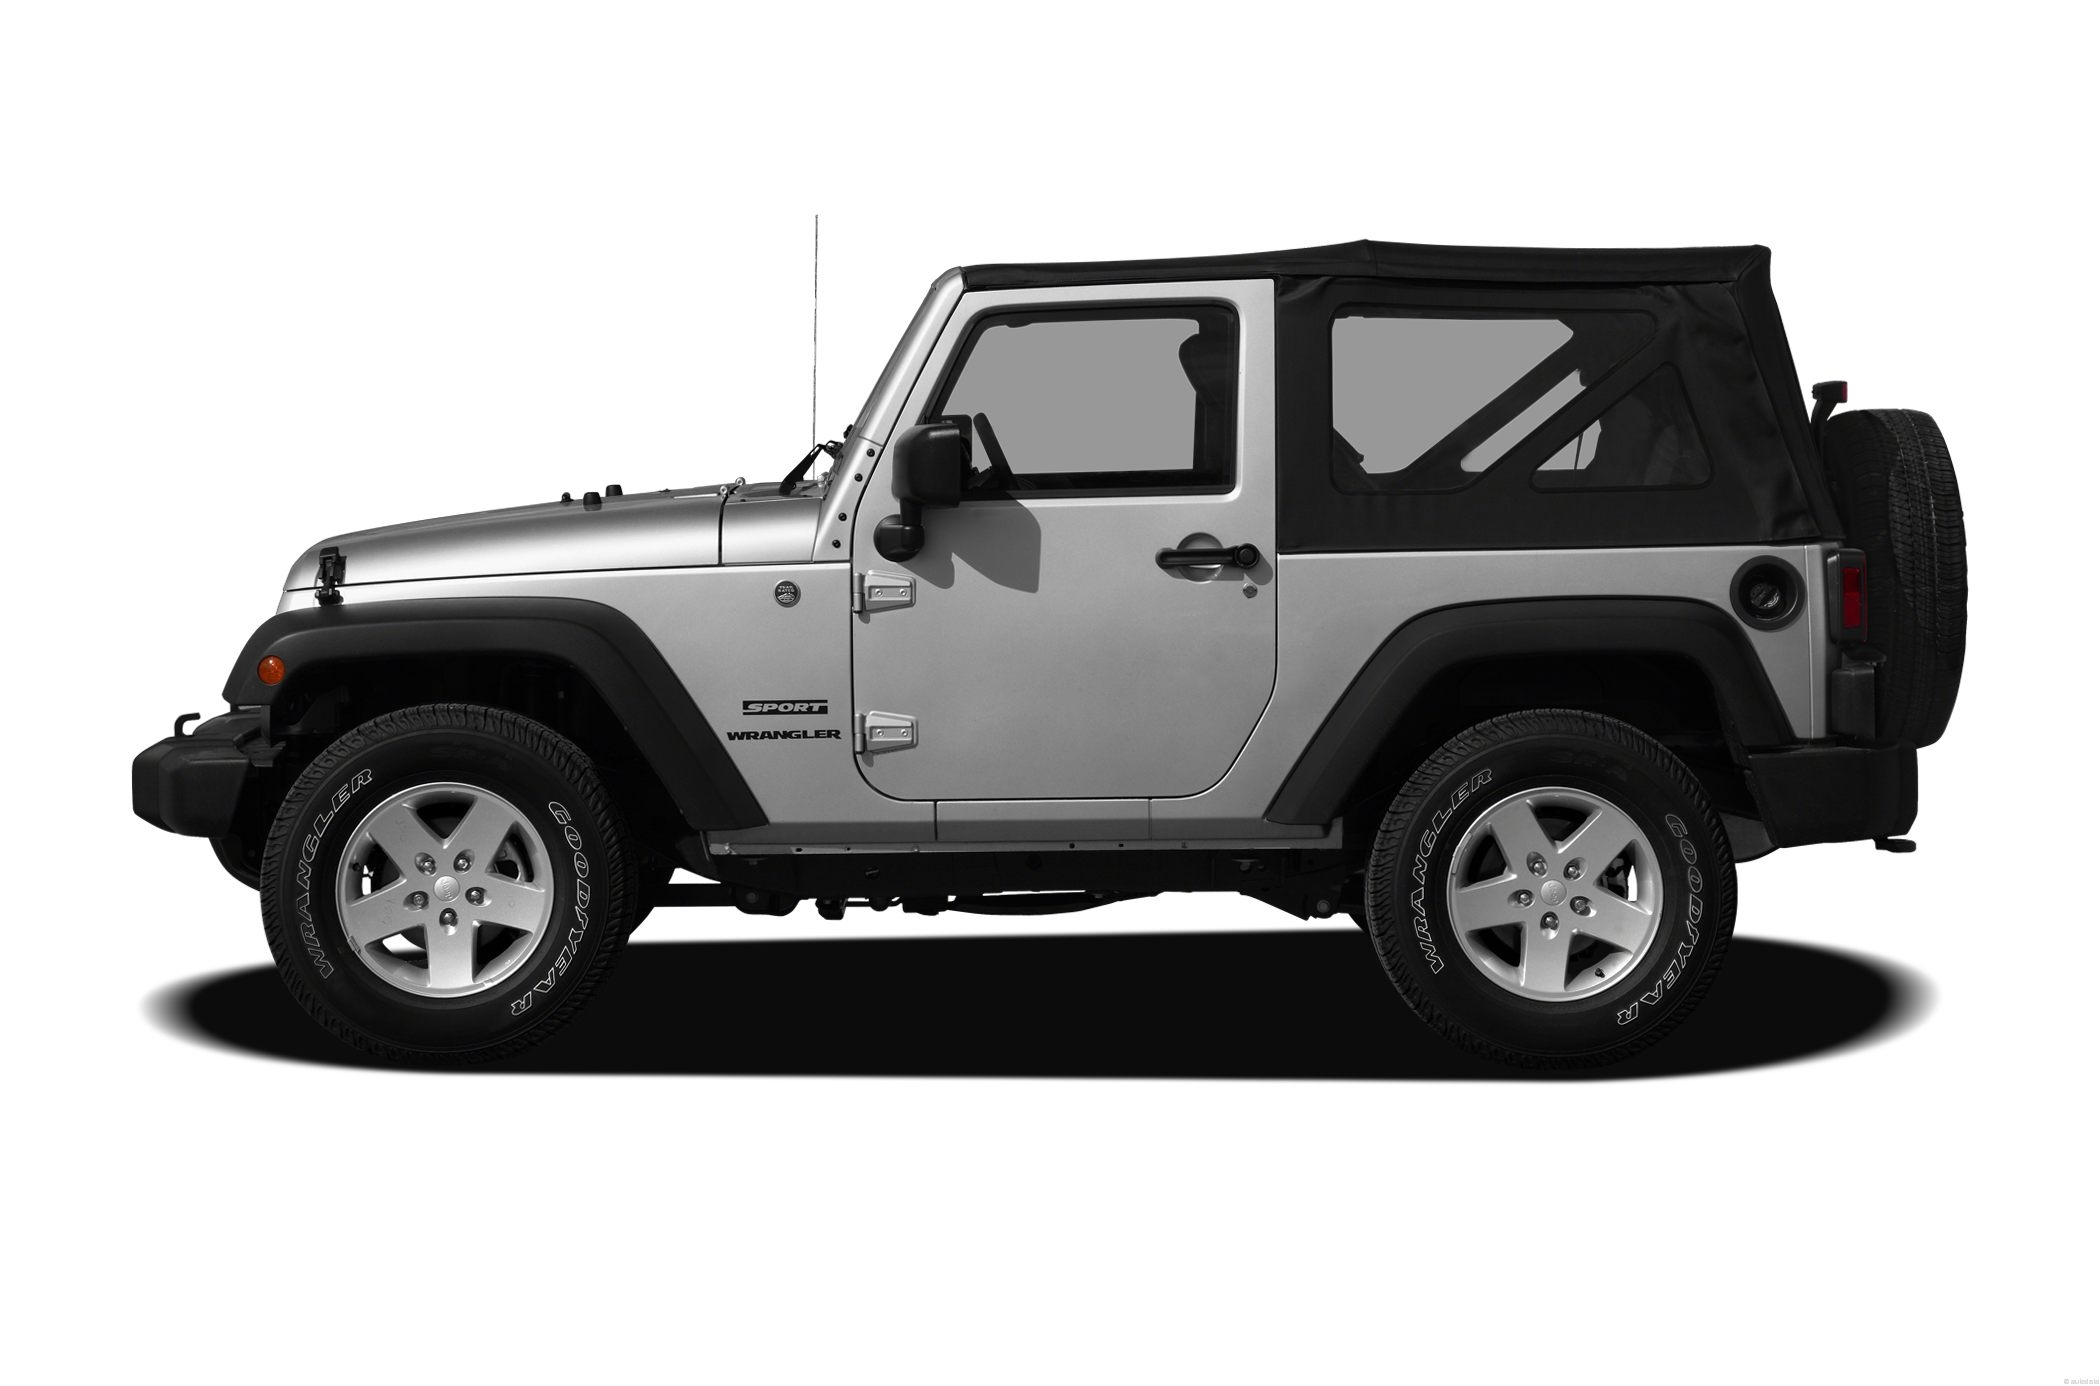 jeep wrangler price 2012 cars and accessories trends gallery jeep wrangler invoice price 2014